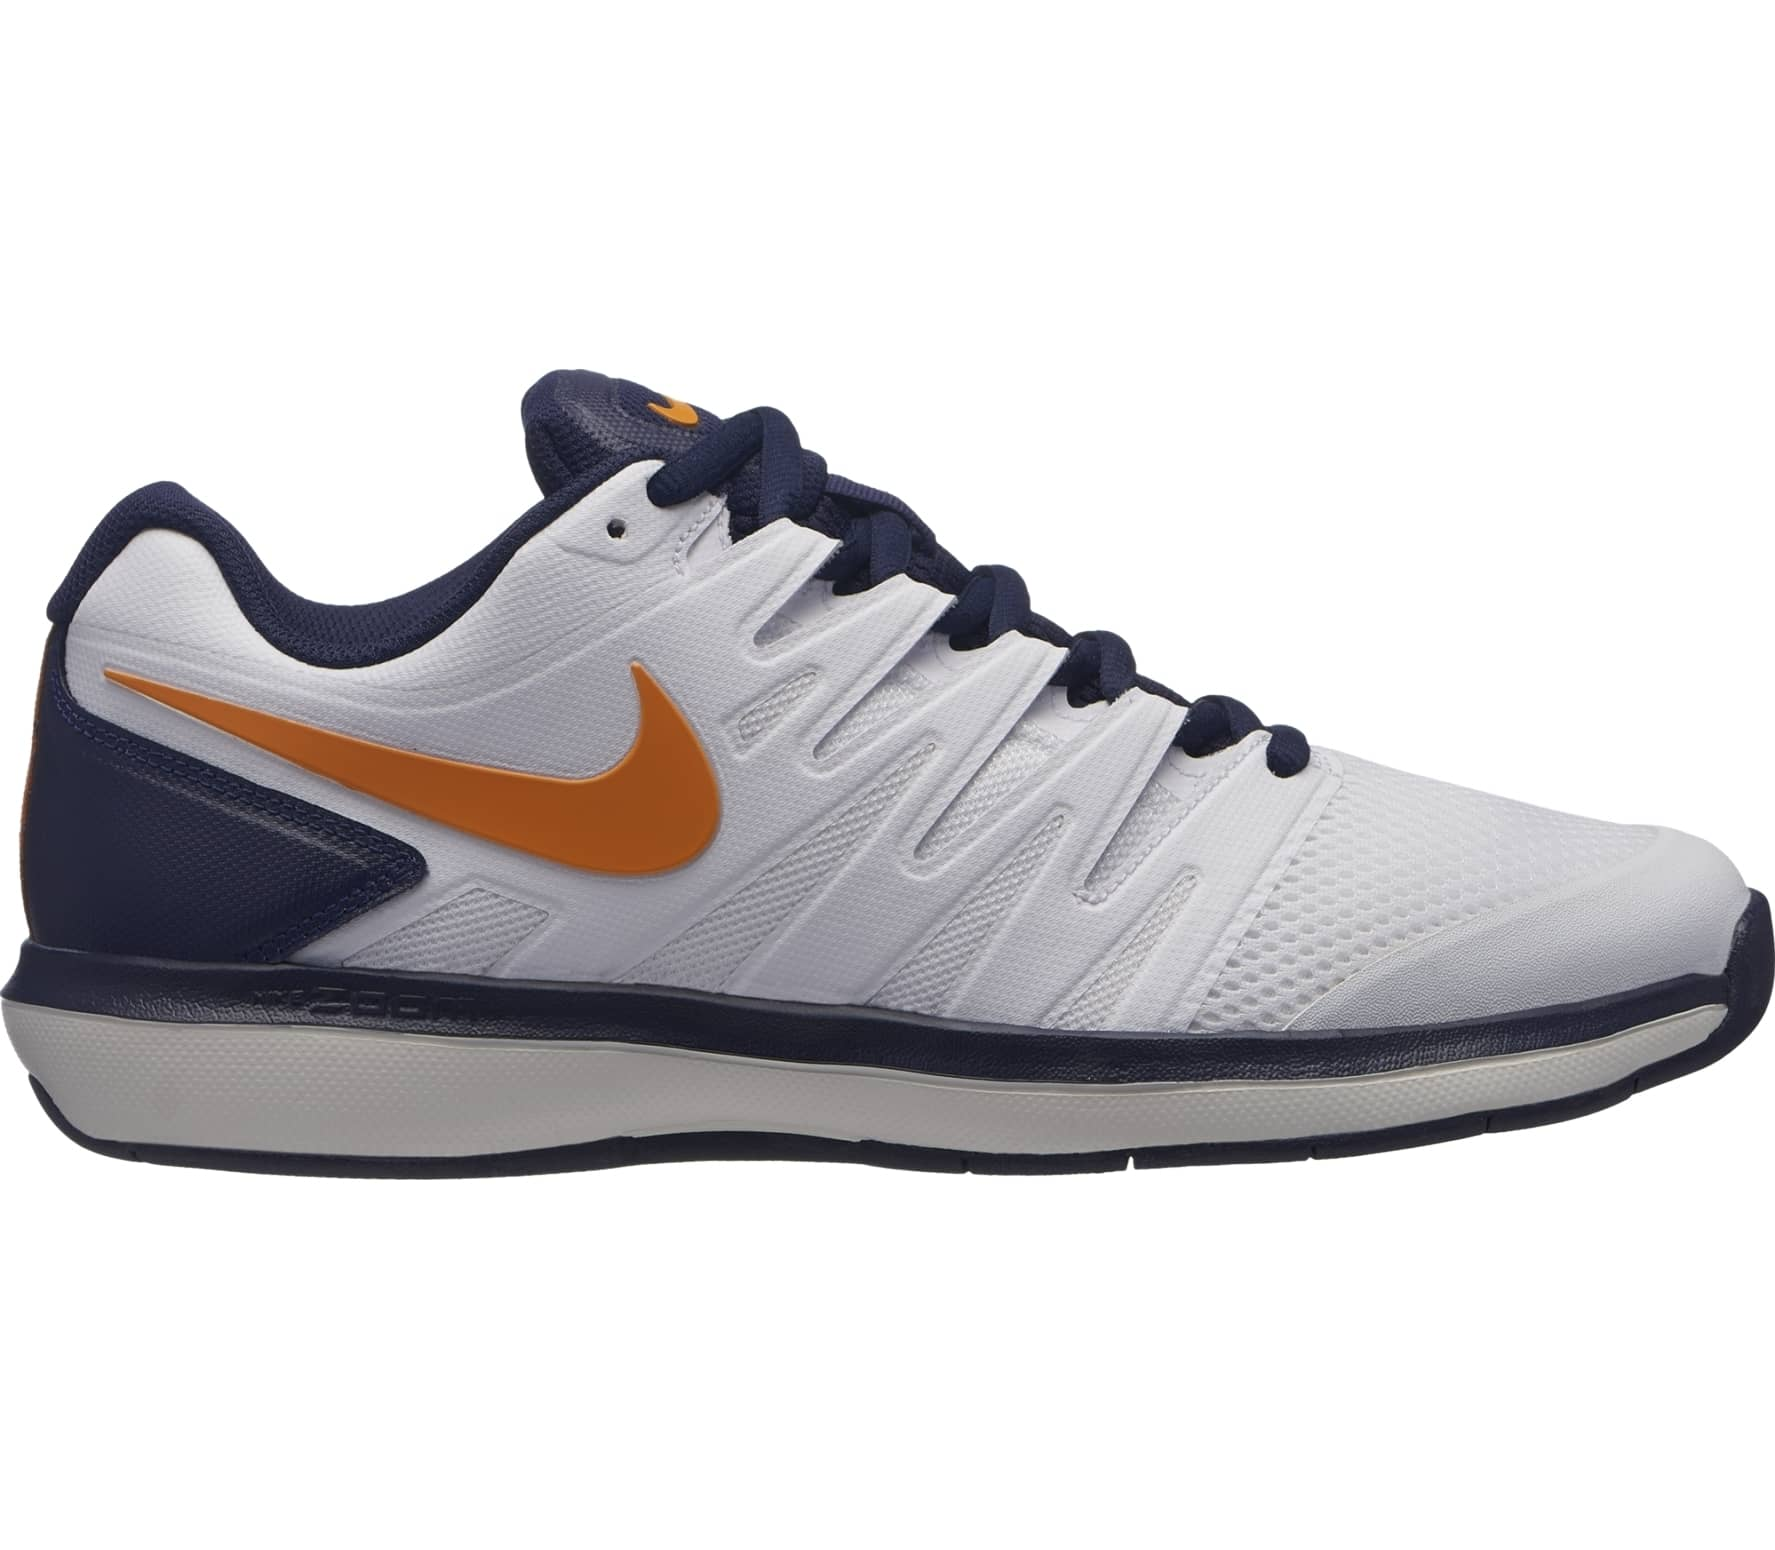 buy popular 9fa15 b04bc Nike - Air Zoom Prestige Carpet men s tennis shoes (white)